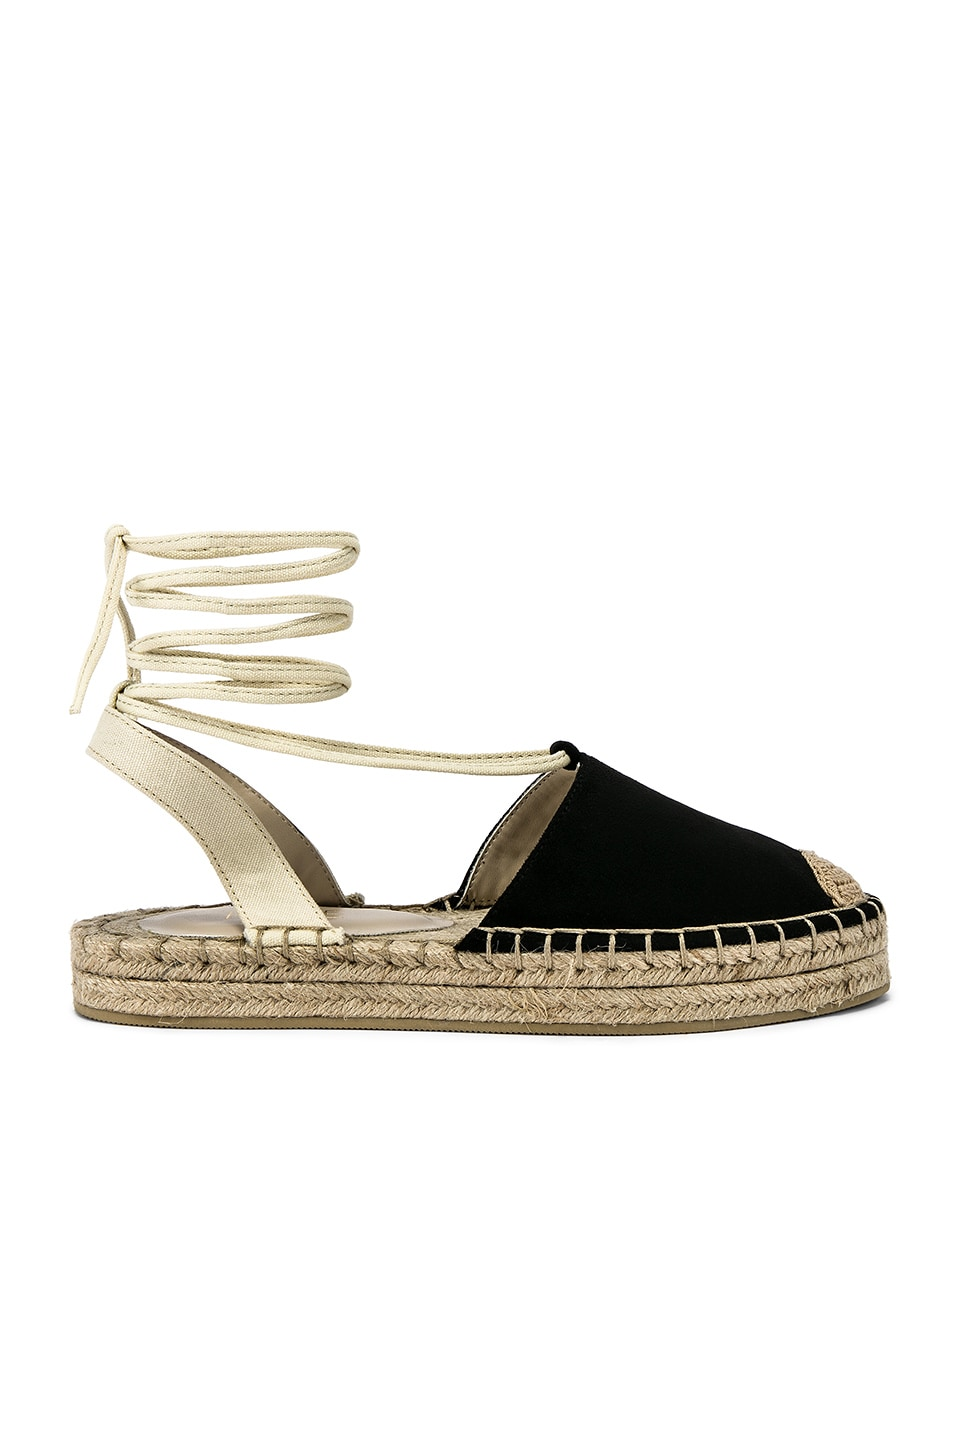 RAYE Bloom Espadrille in Black